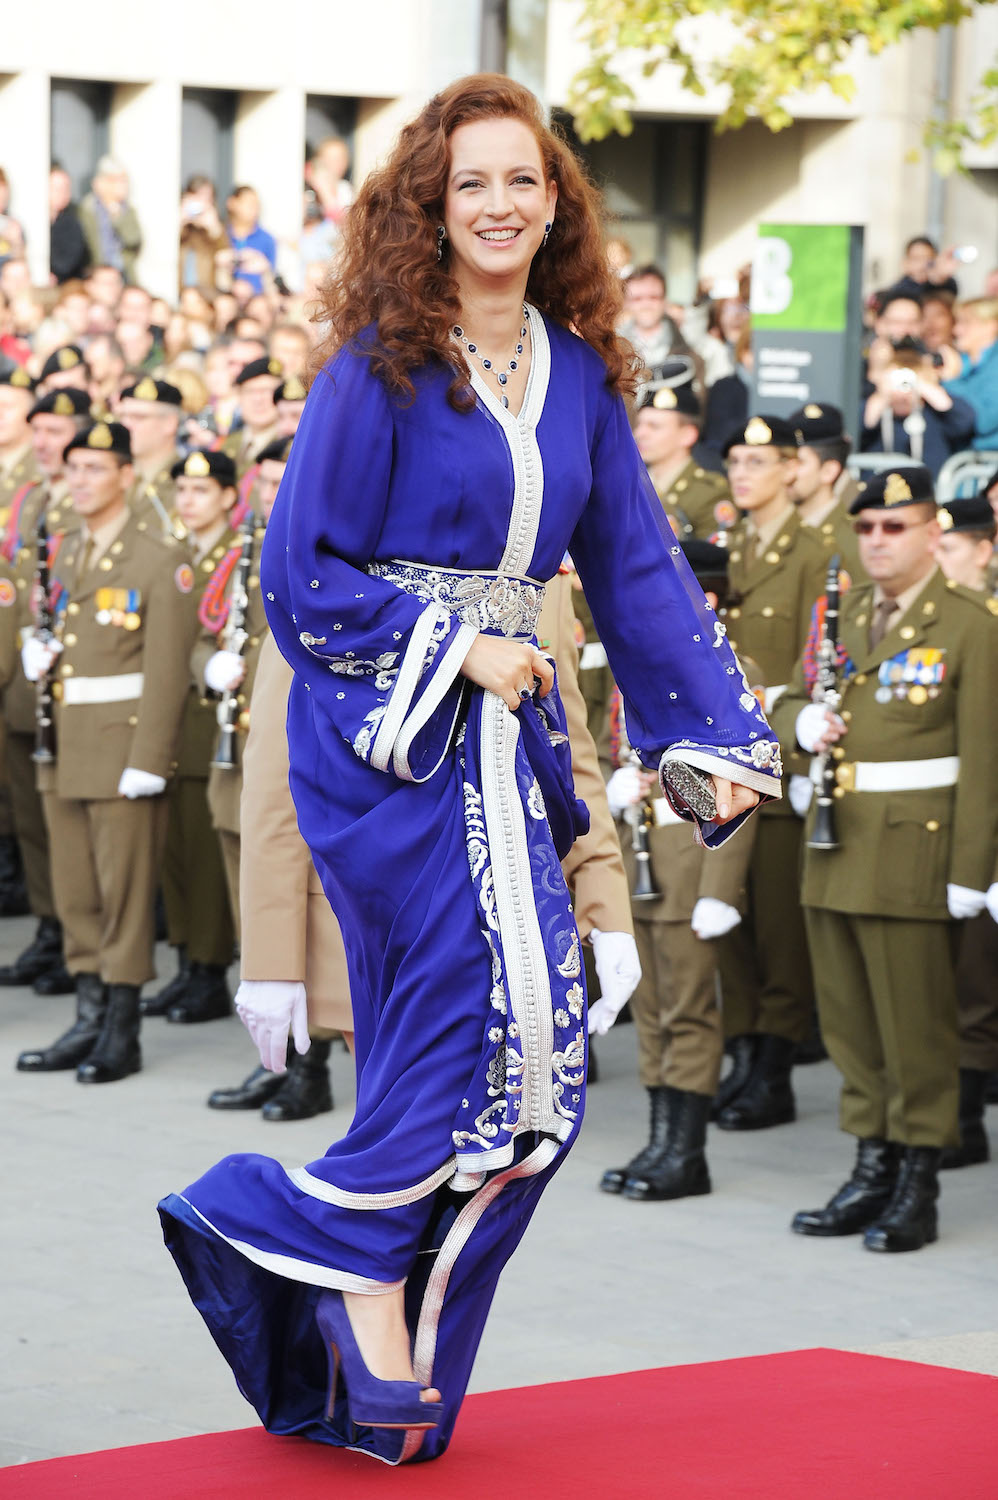 Princess Lalla Salma attends the wedding of Prince Guillaume Of Luxembourg.